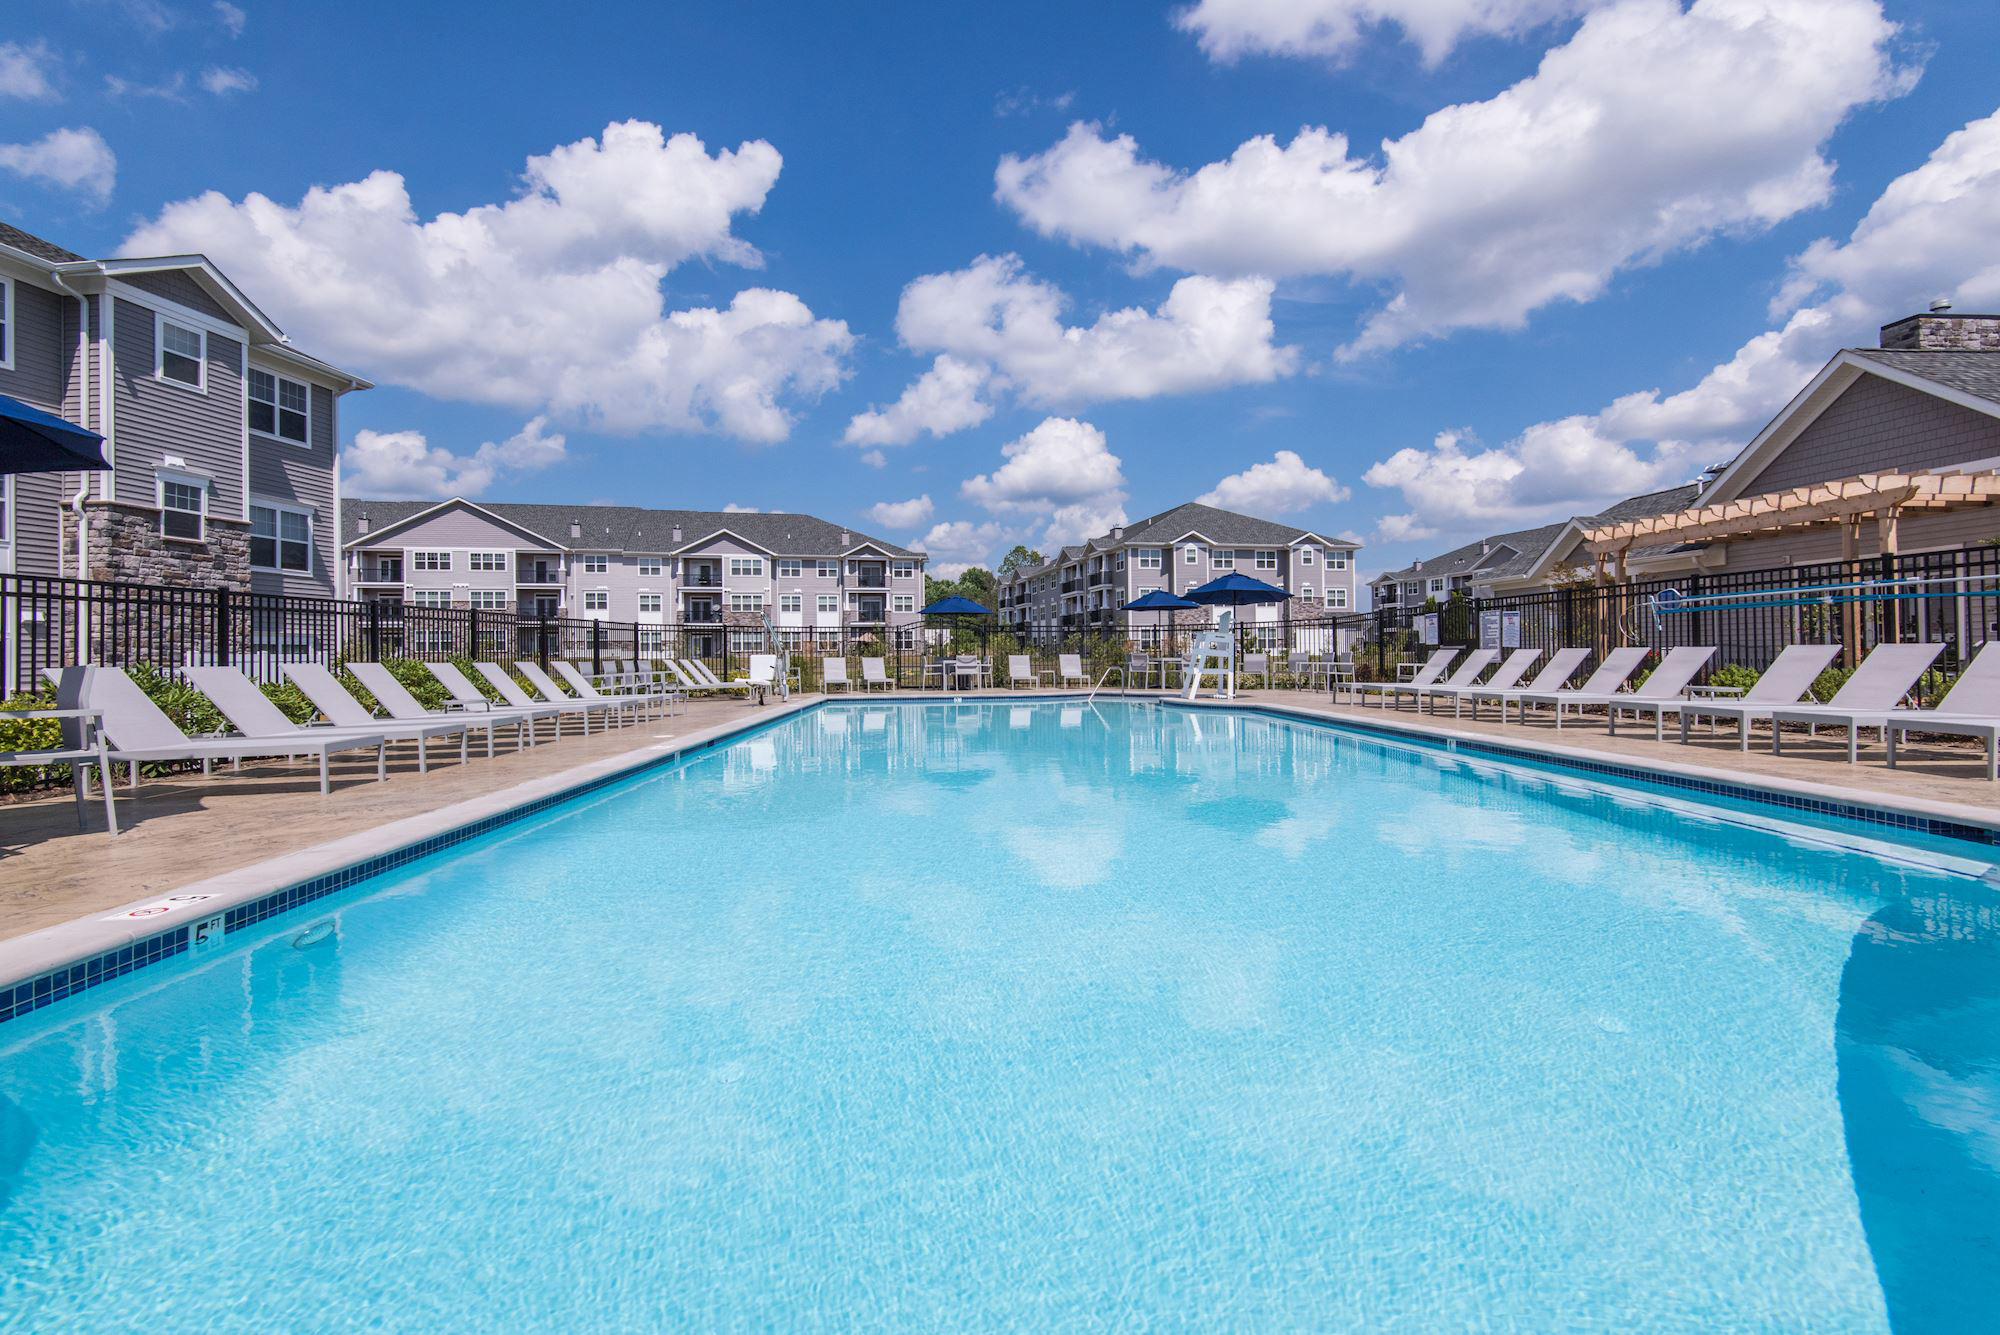 Avanti Luxury Apartments in Bel Air, MD - Resort Style Swimming Pool